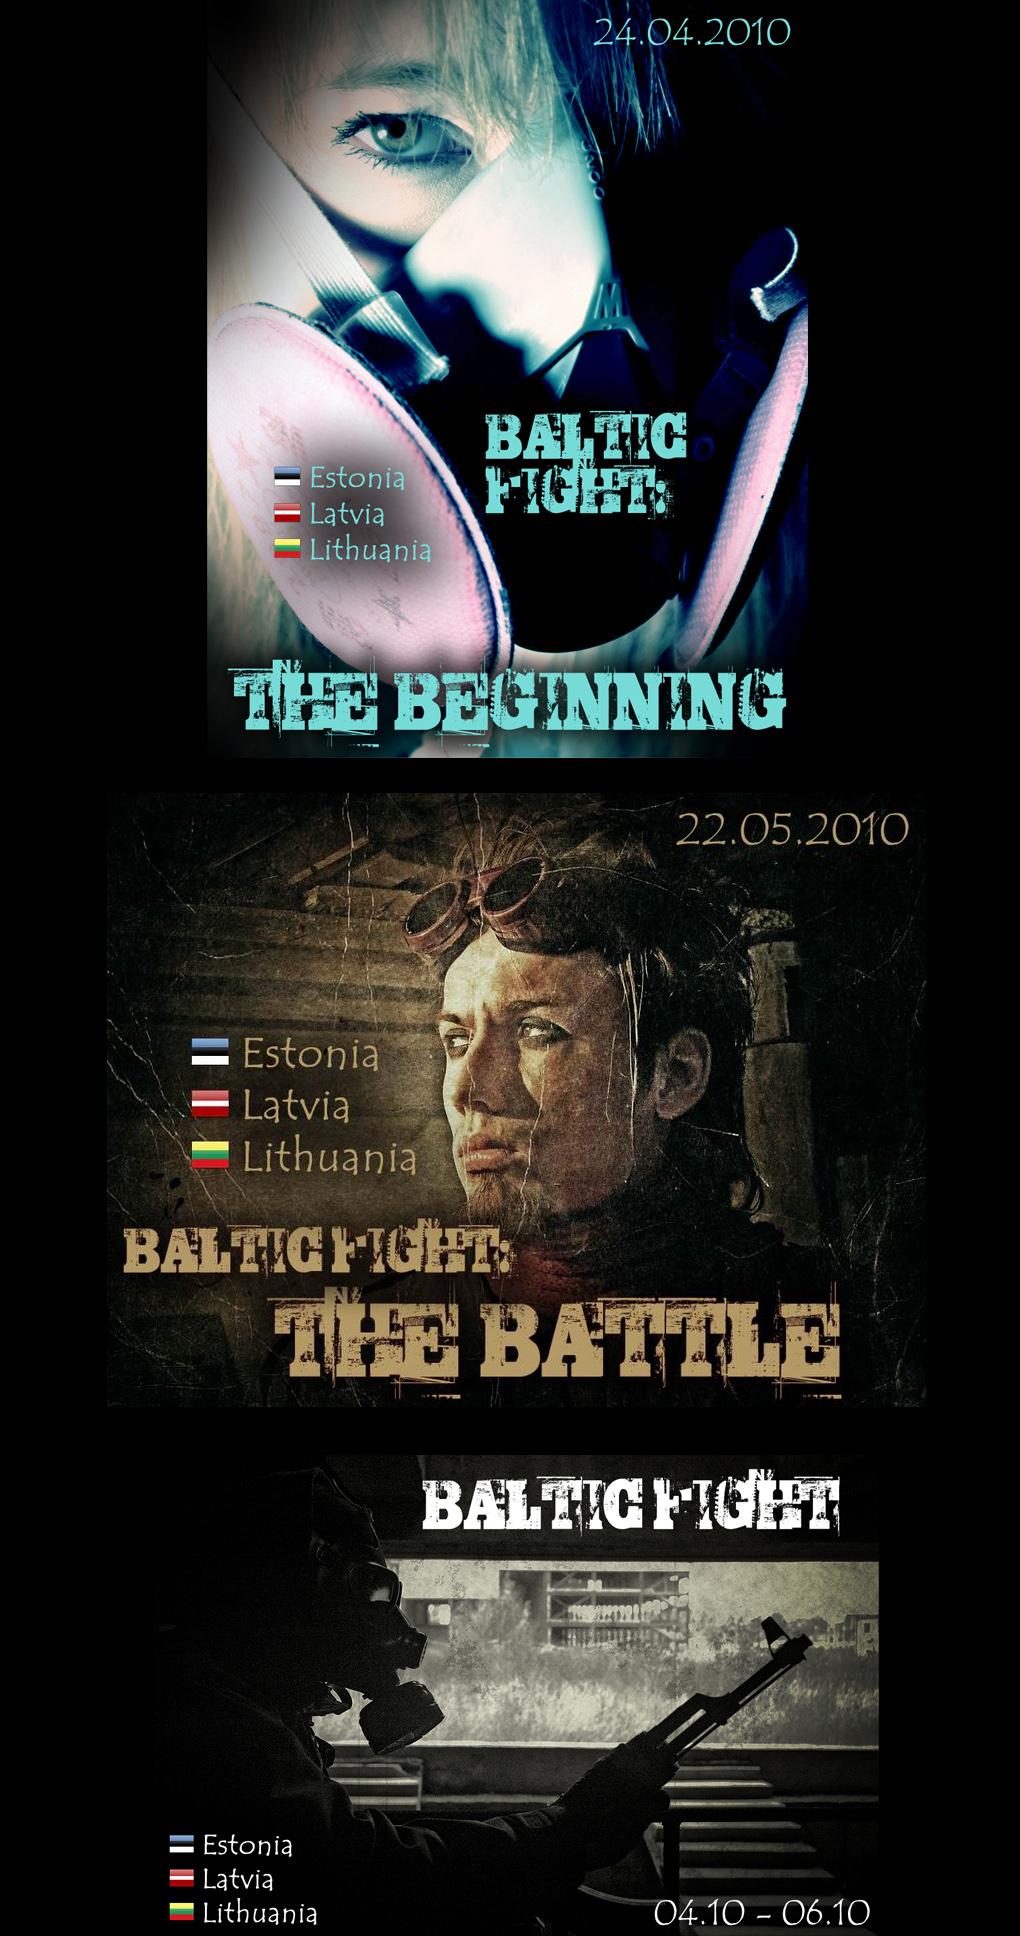 Baltic Fight анонсы